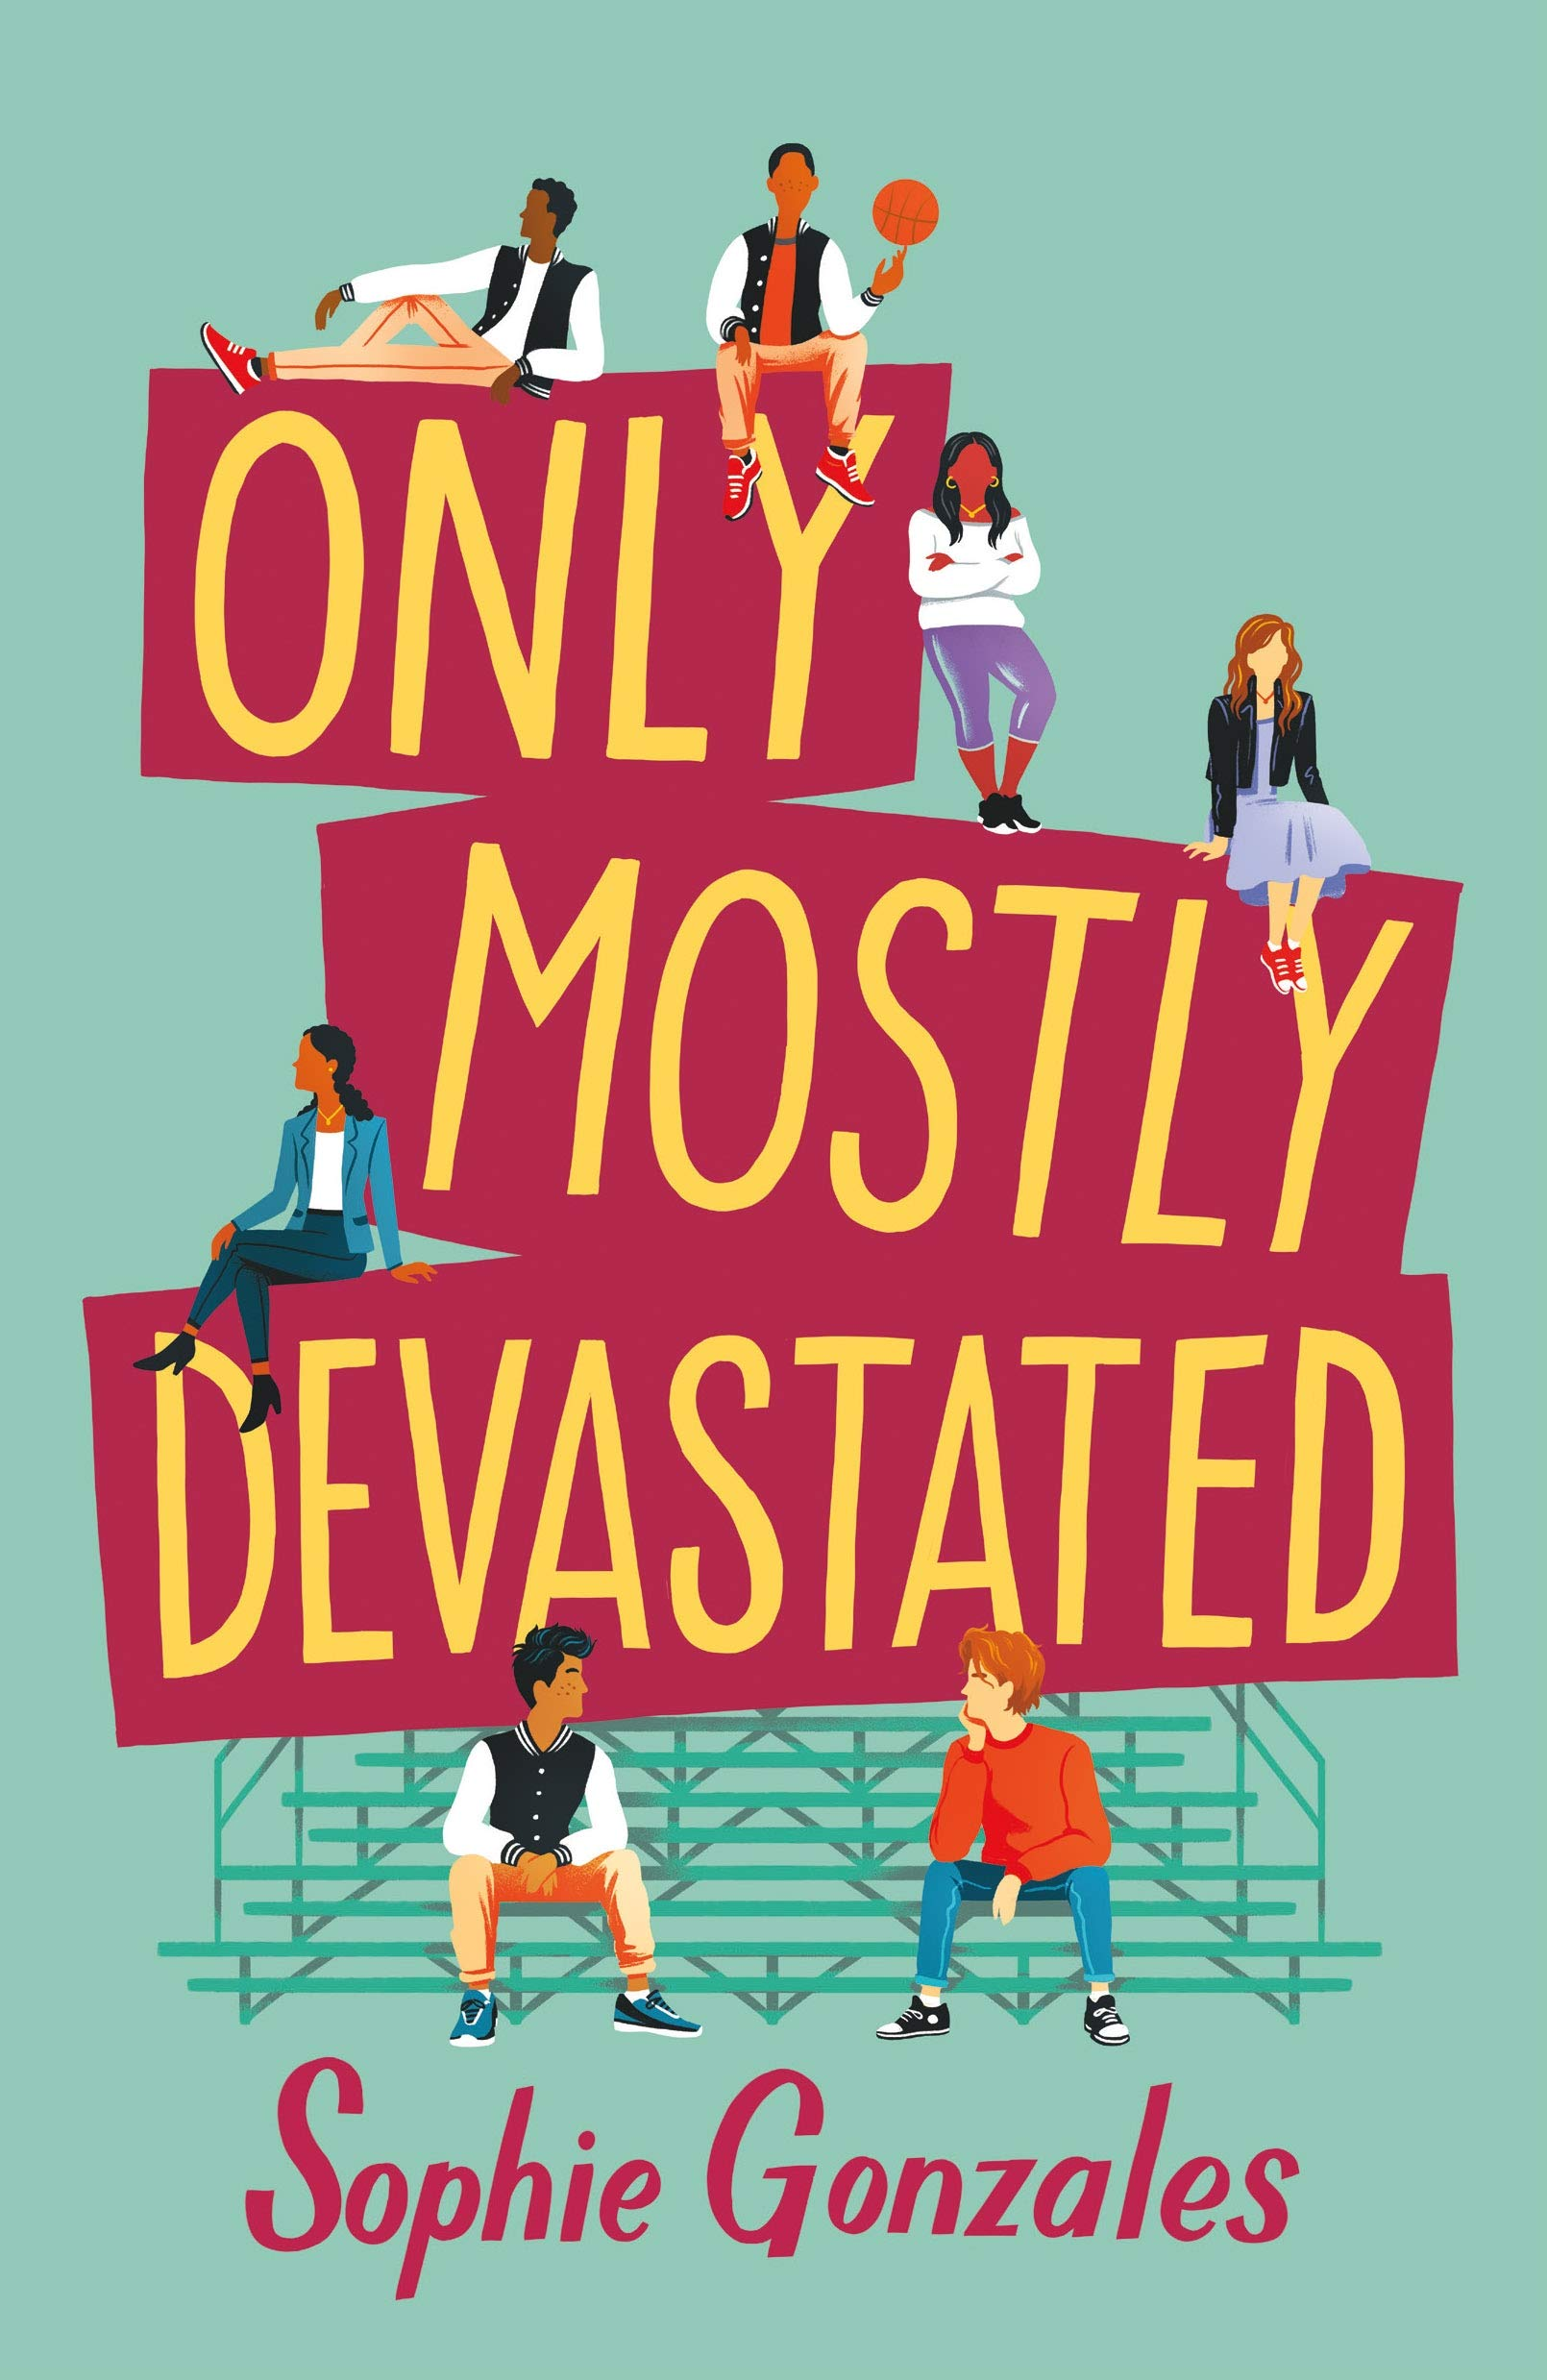 Amazon.com: Only Mostly Devastated: A Novel (9781250315892 ...